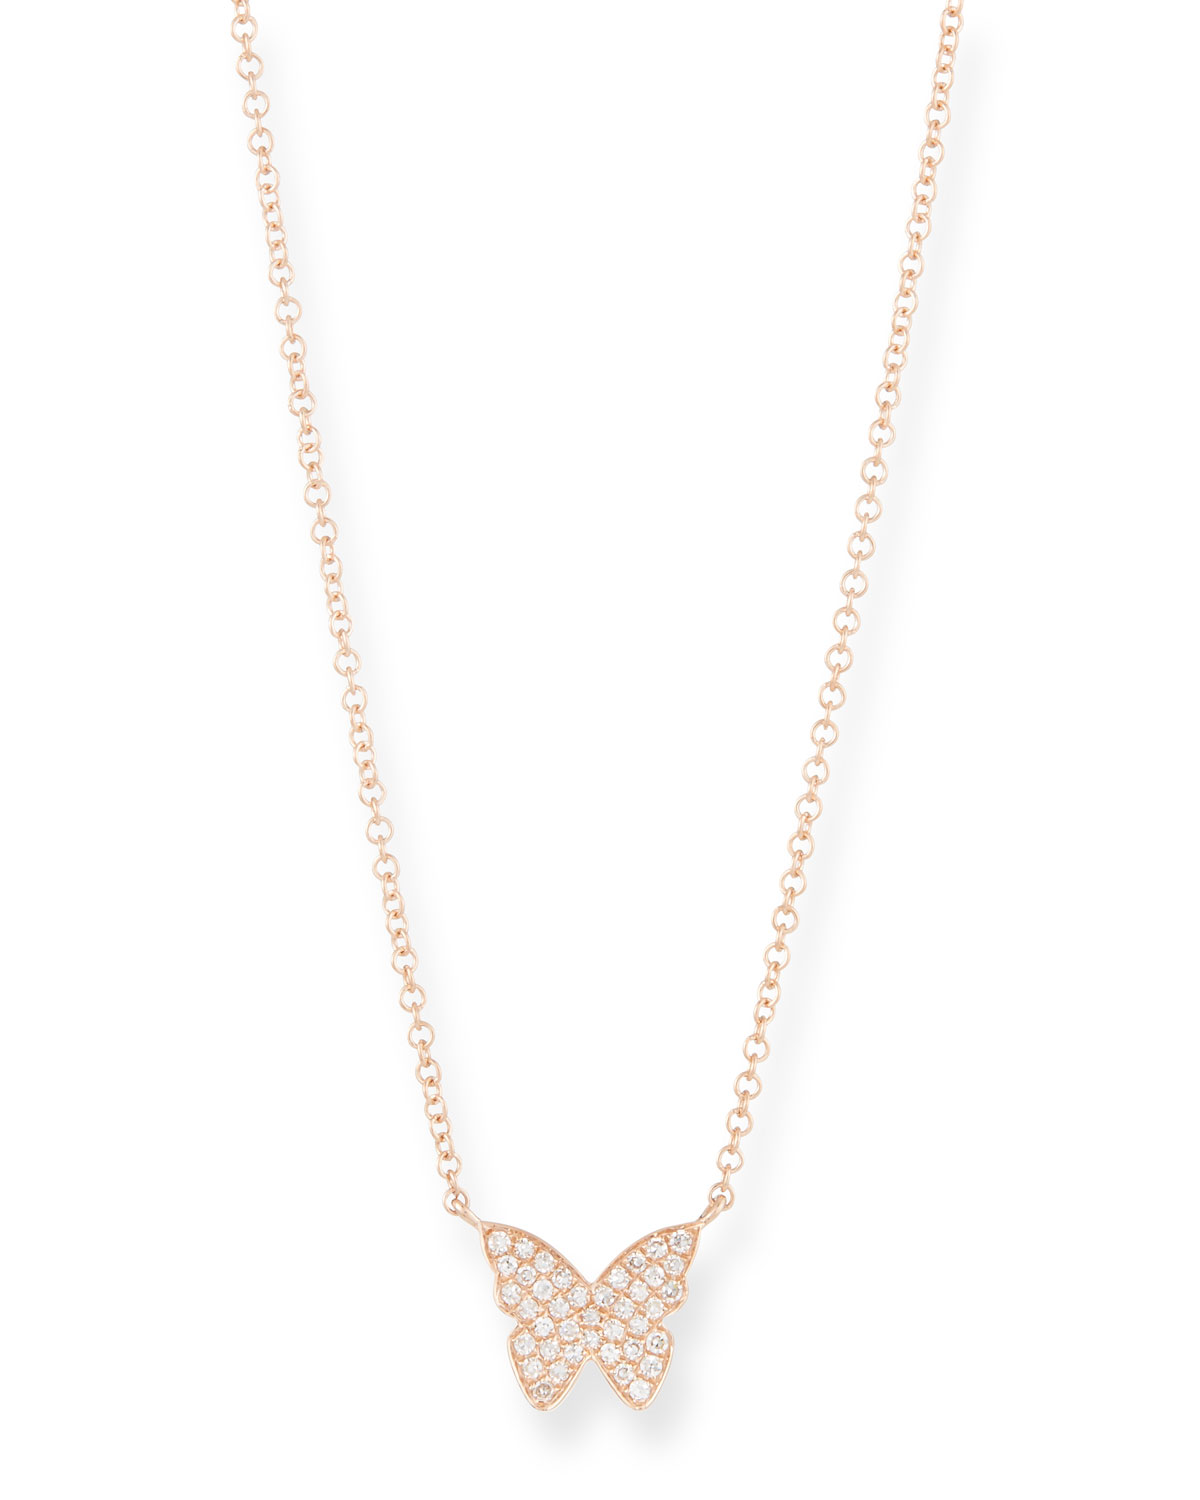 EF COLLECTION 14K ROSE GOLD DIAMOND BUTTERFLY NECKLACE